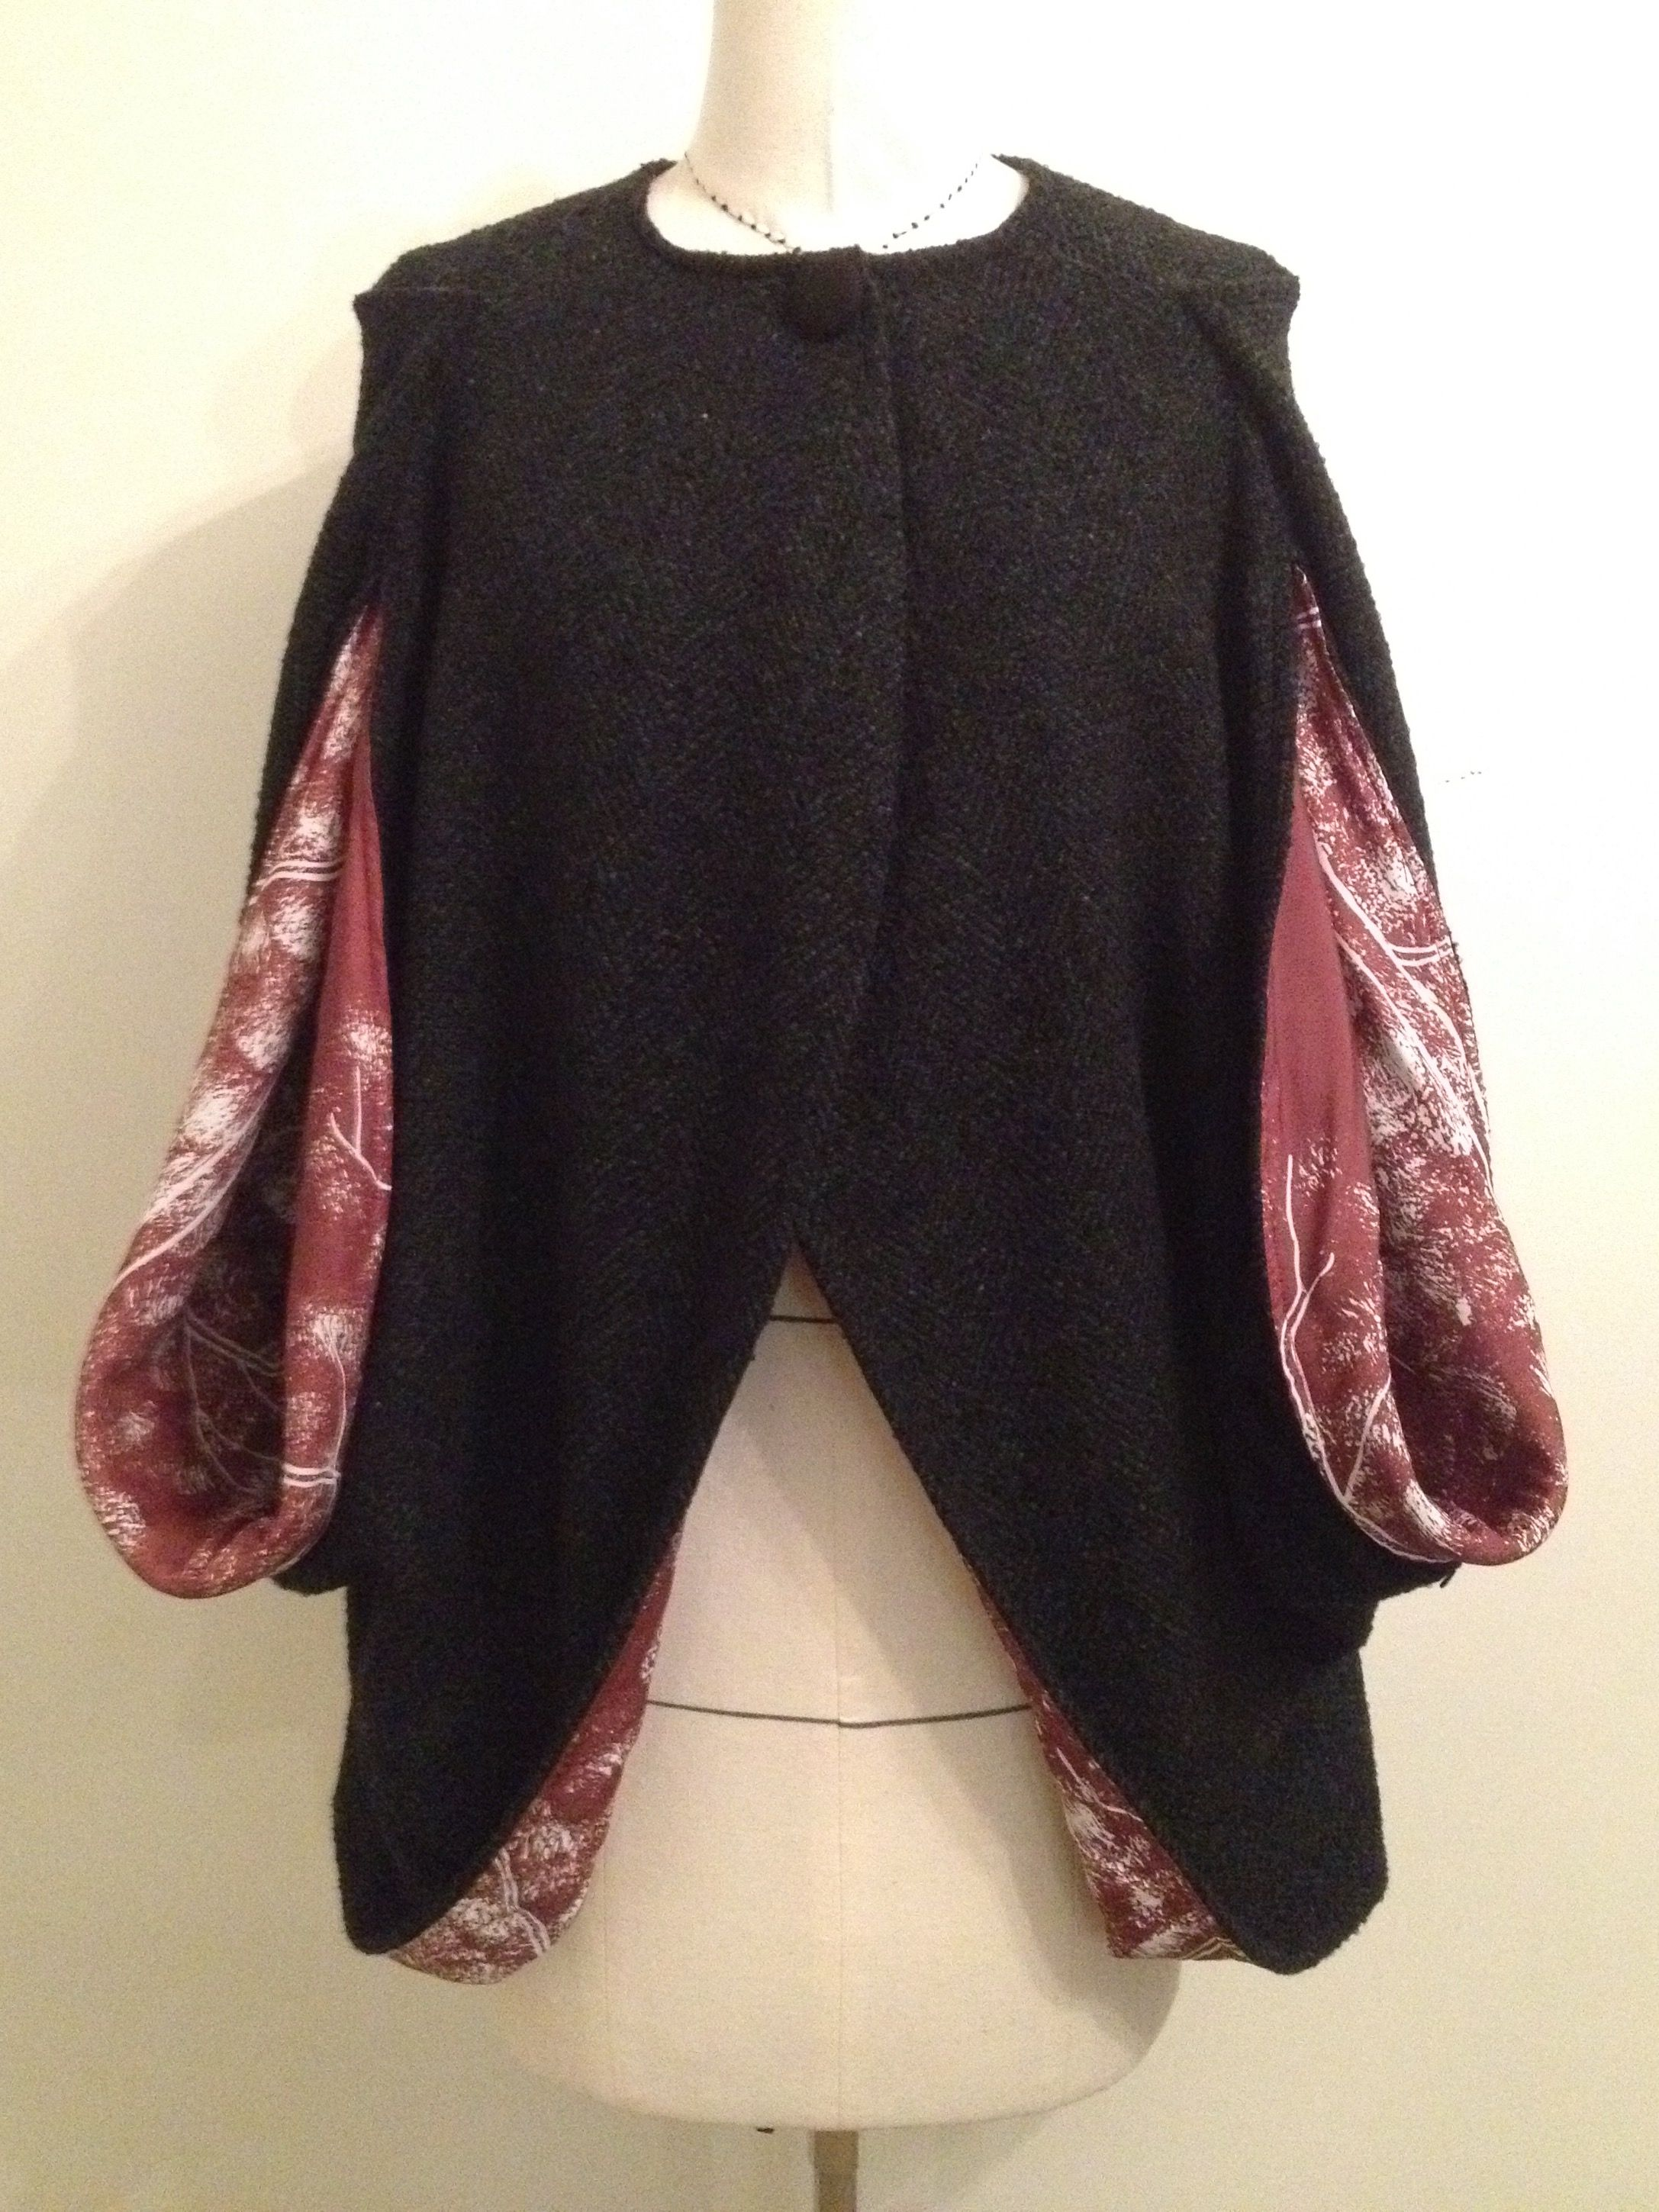 Cape. Black and green wool Cape with tree print insert. $120 Campisi couture.